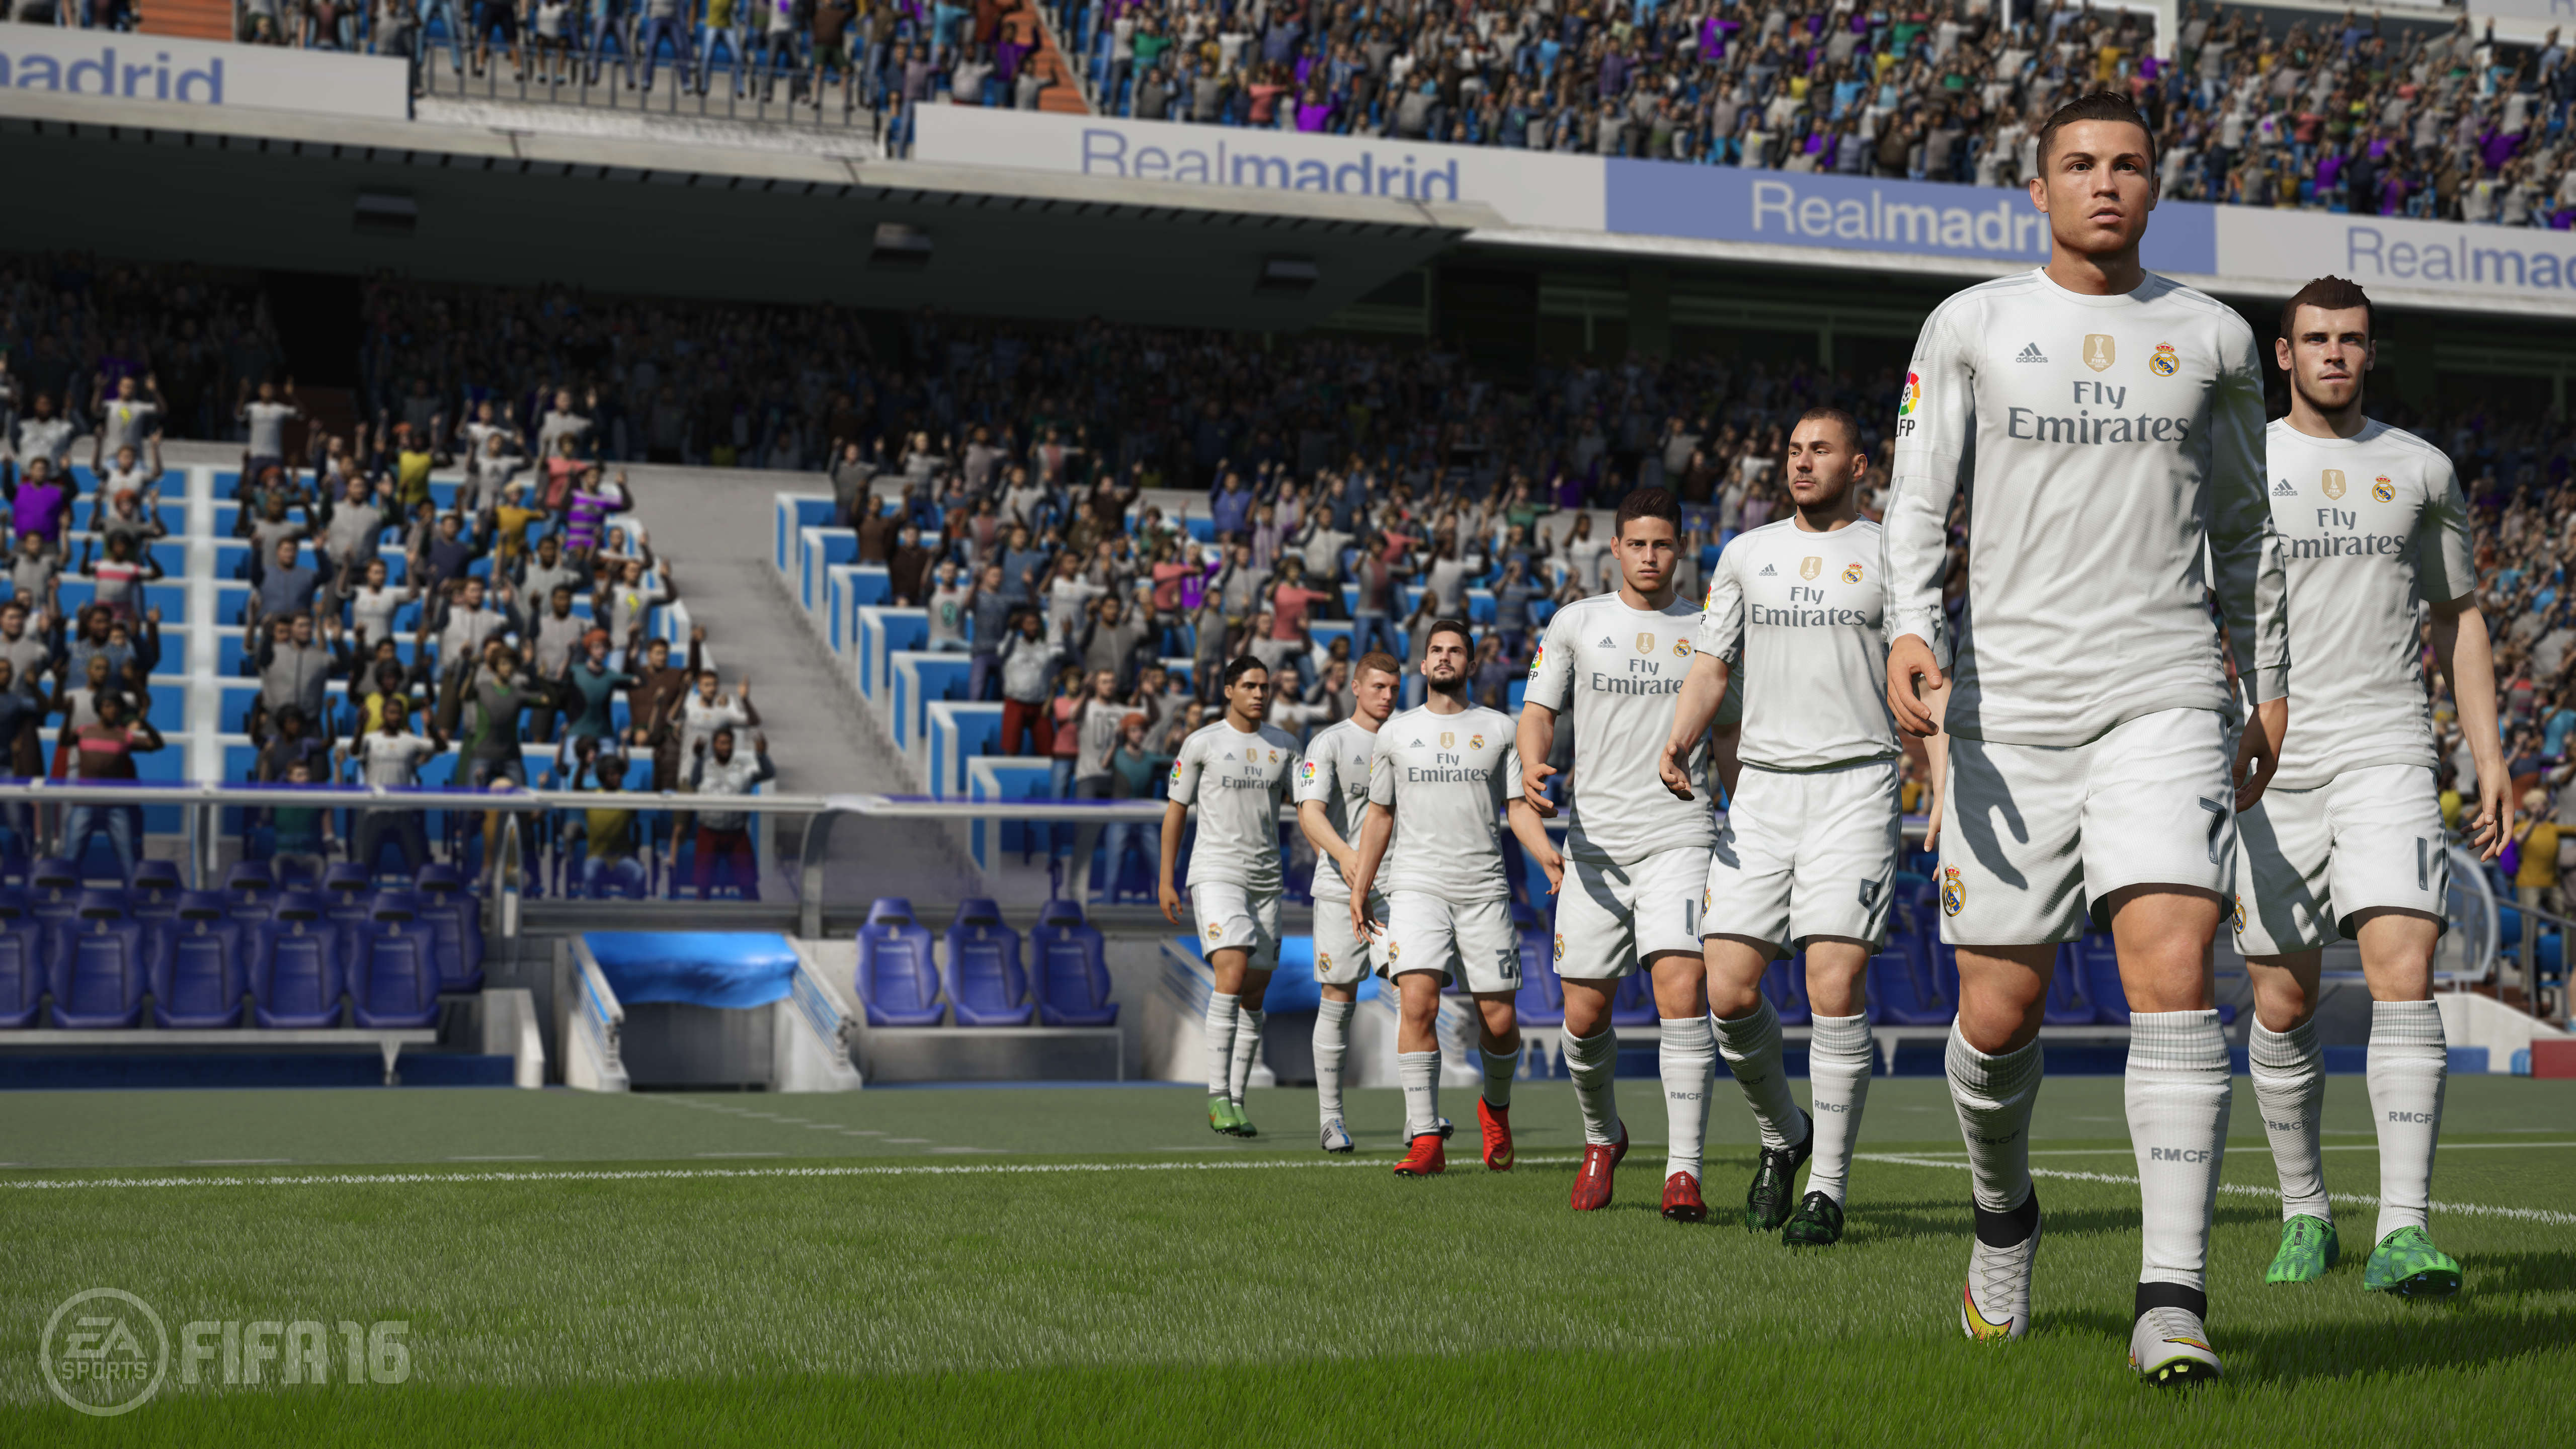 fifa 16 rmannounce carvajal wm 7 FIFA 17 Announced, Will Run On New Engine